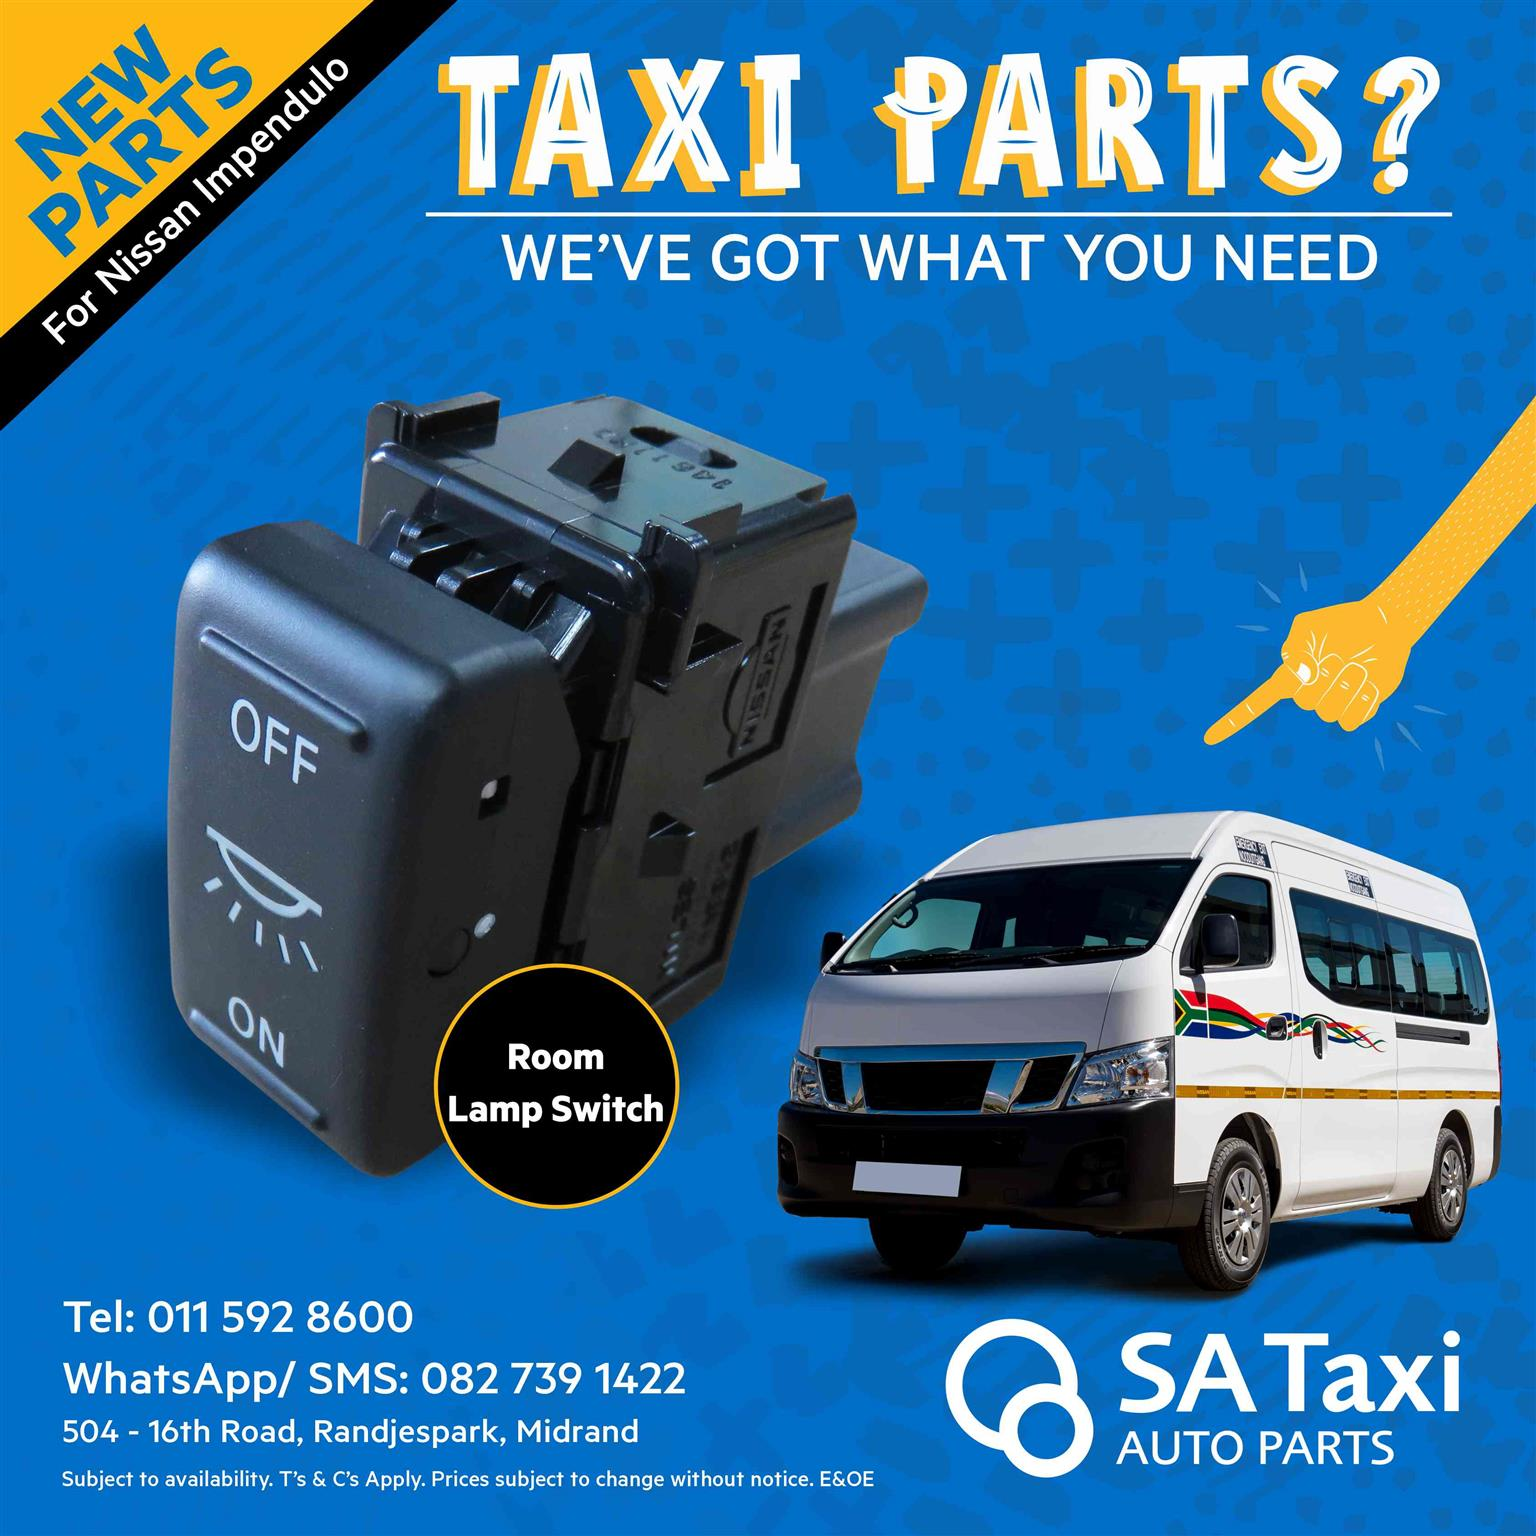 NEW Room Lamp Switch suitable for Nissan NV350 Impendulo - SA Taxi Auto Parts quality spares